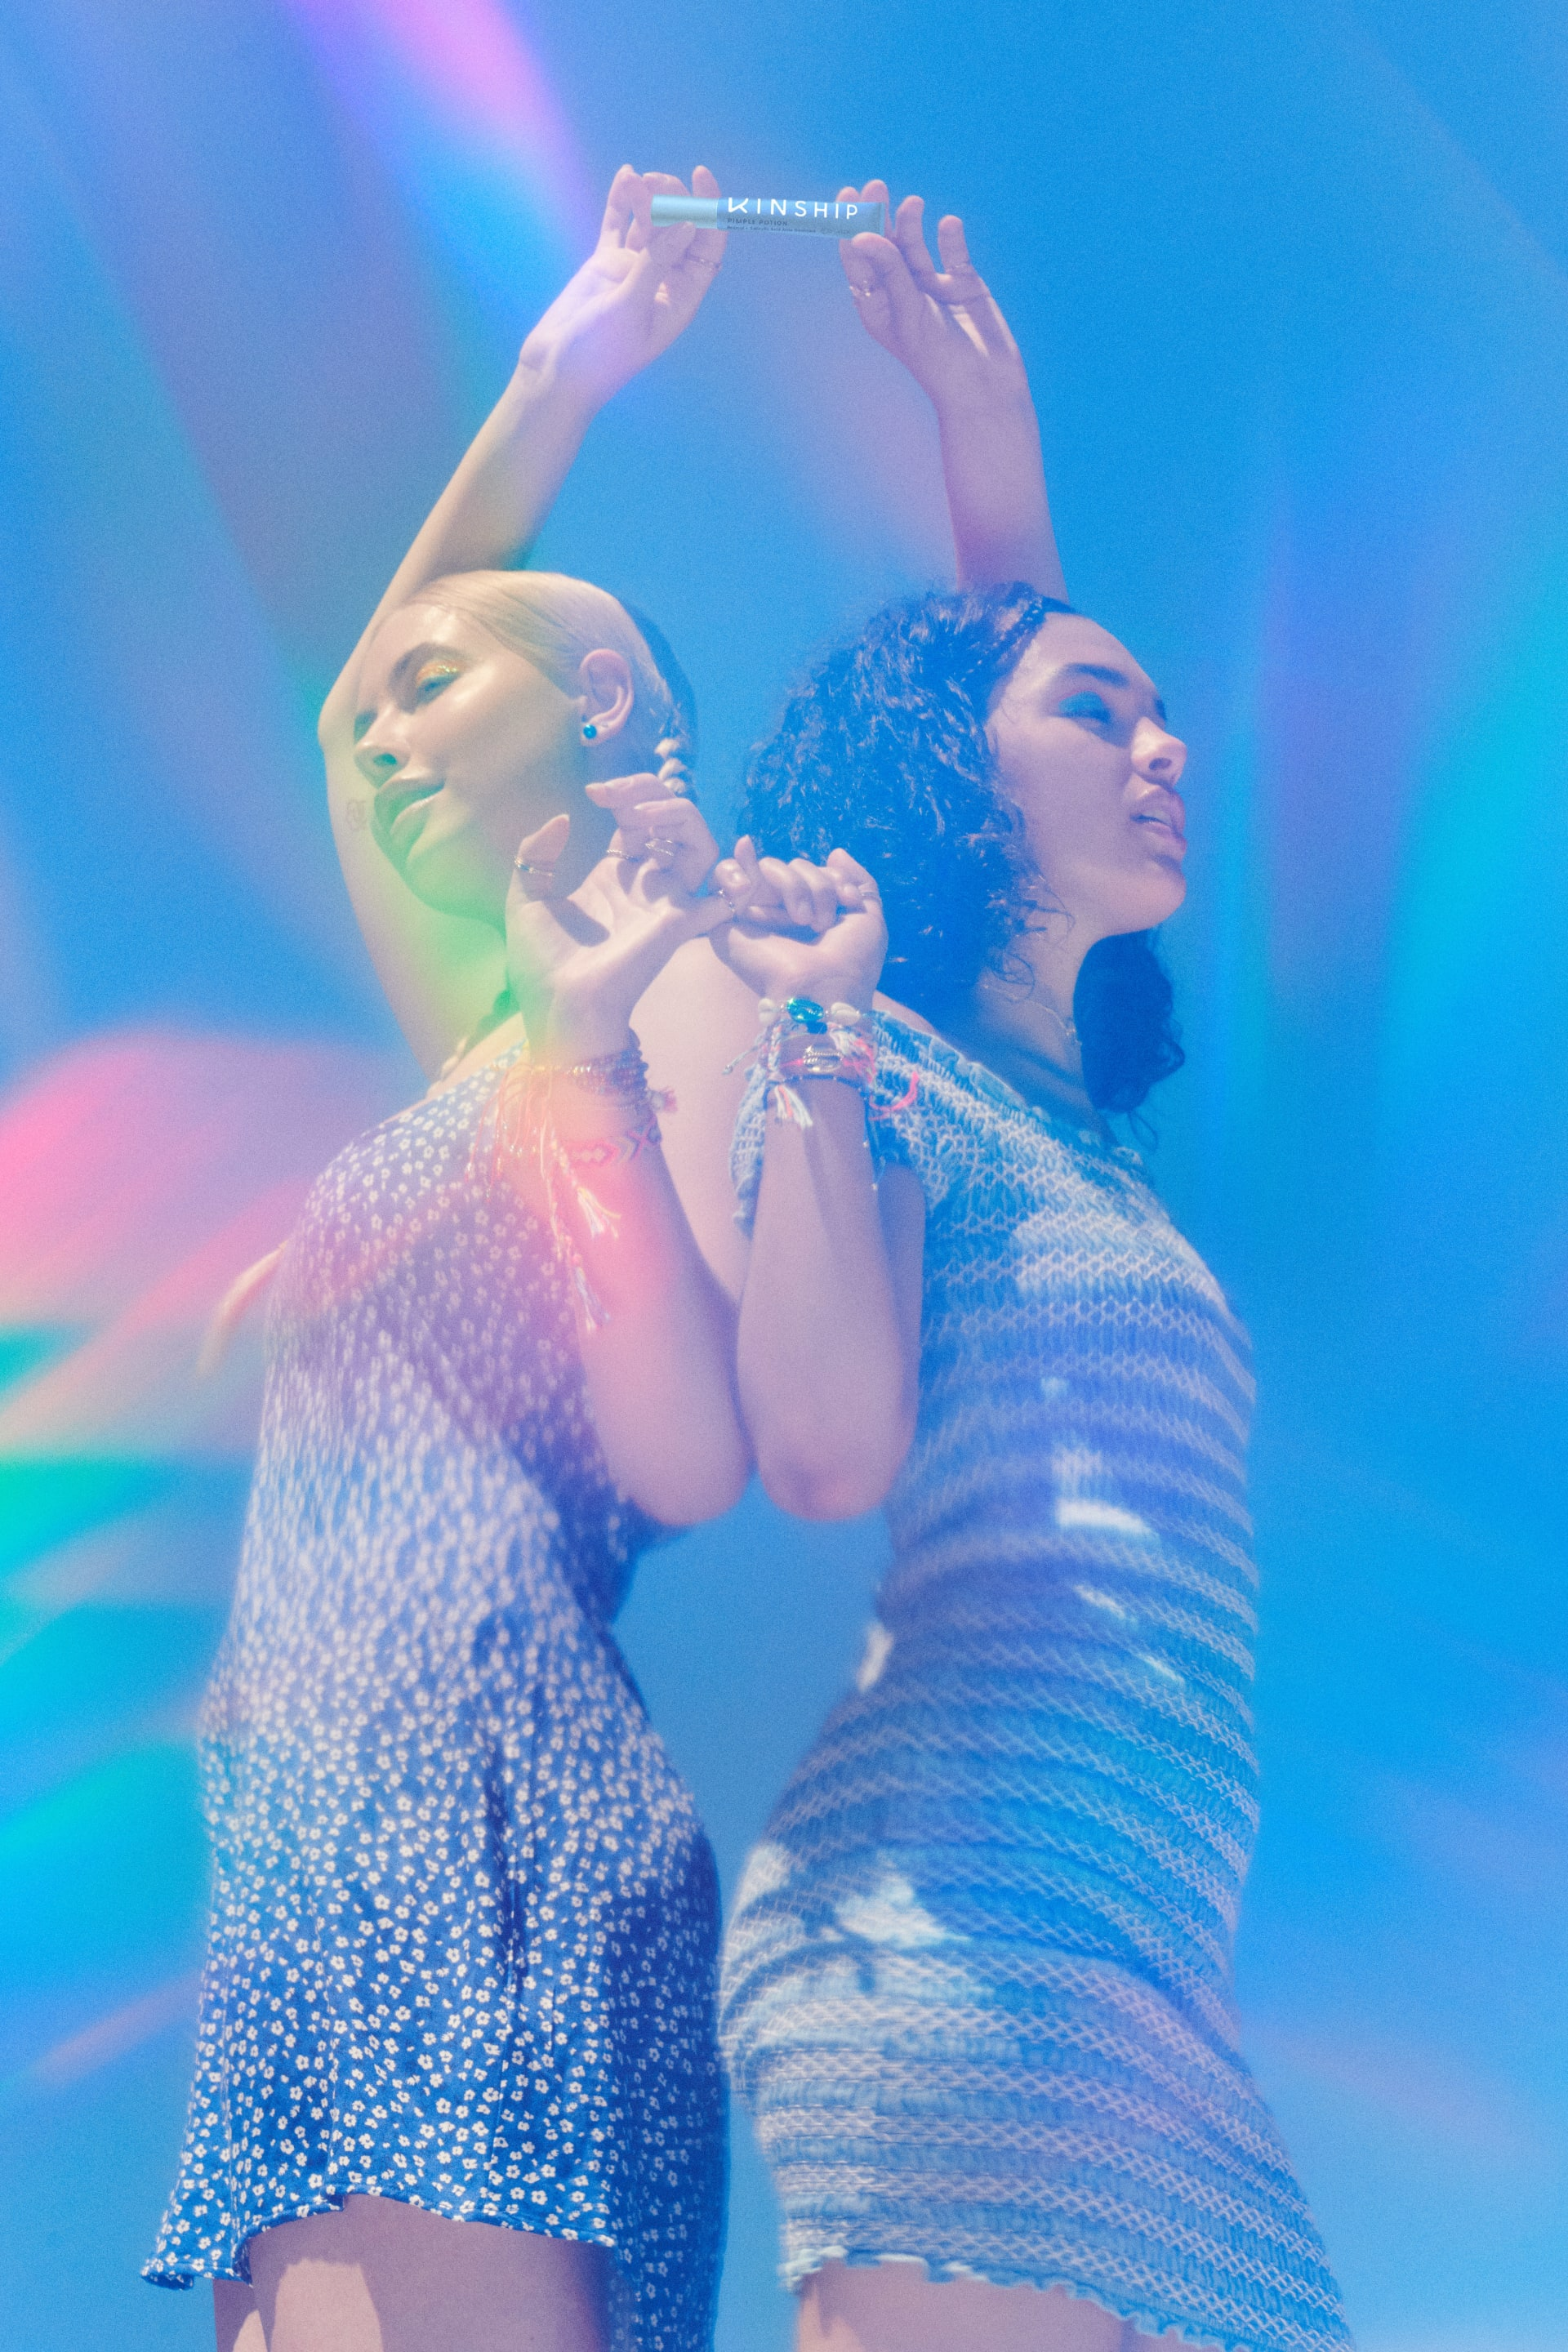 Two friends hold hands outdoors, cast in a rainbow prism of light | Kinship